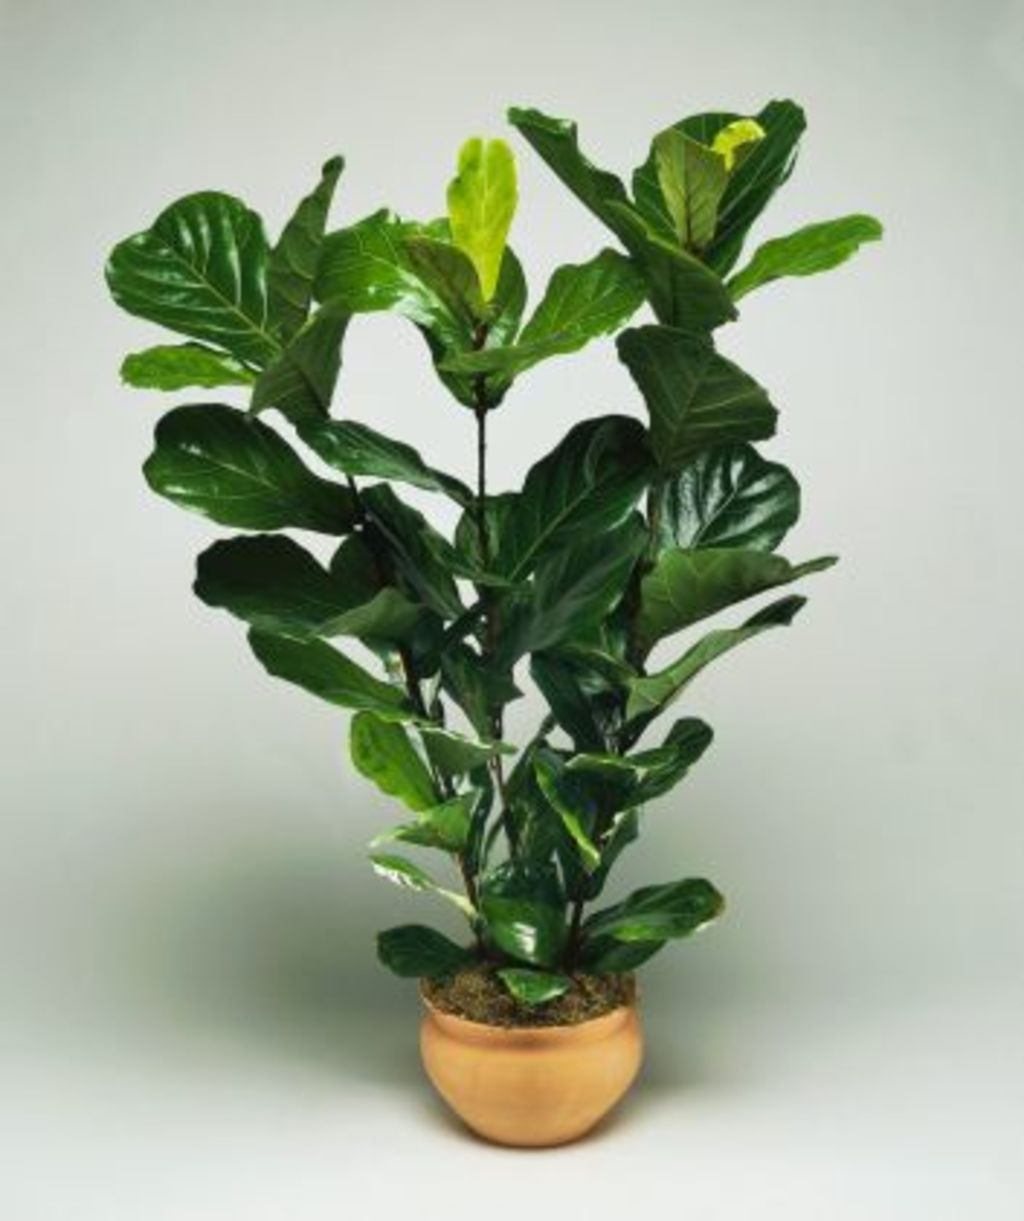 Everyone's favourite indoor plant. Photo: Getty Images